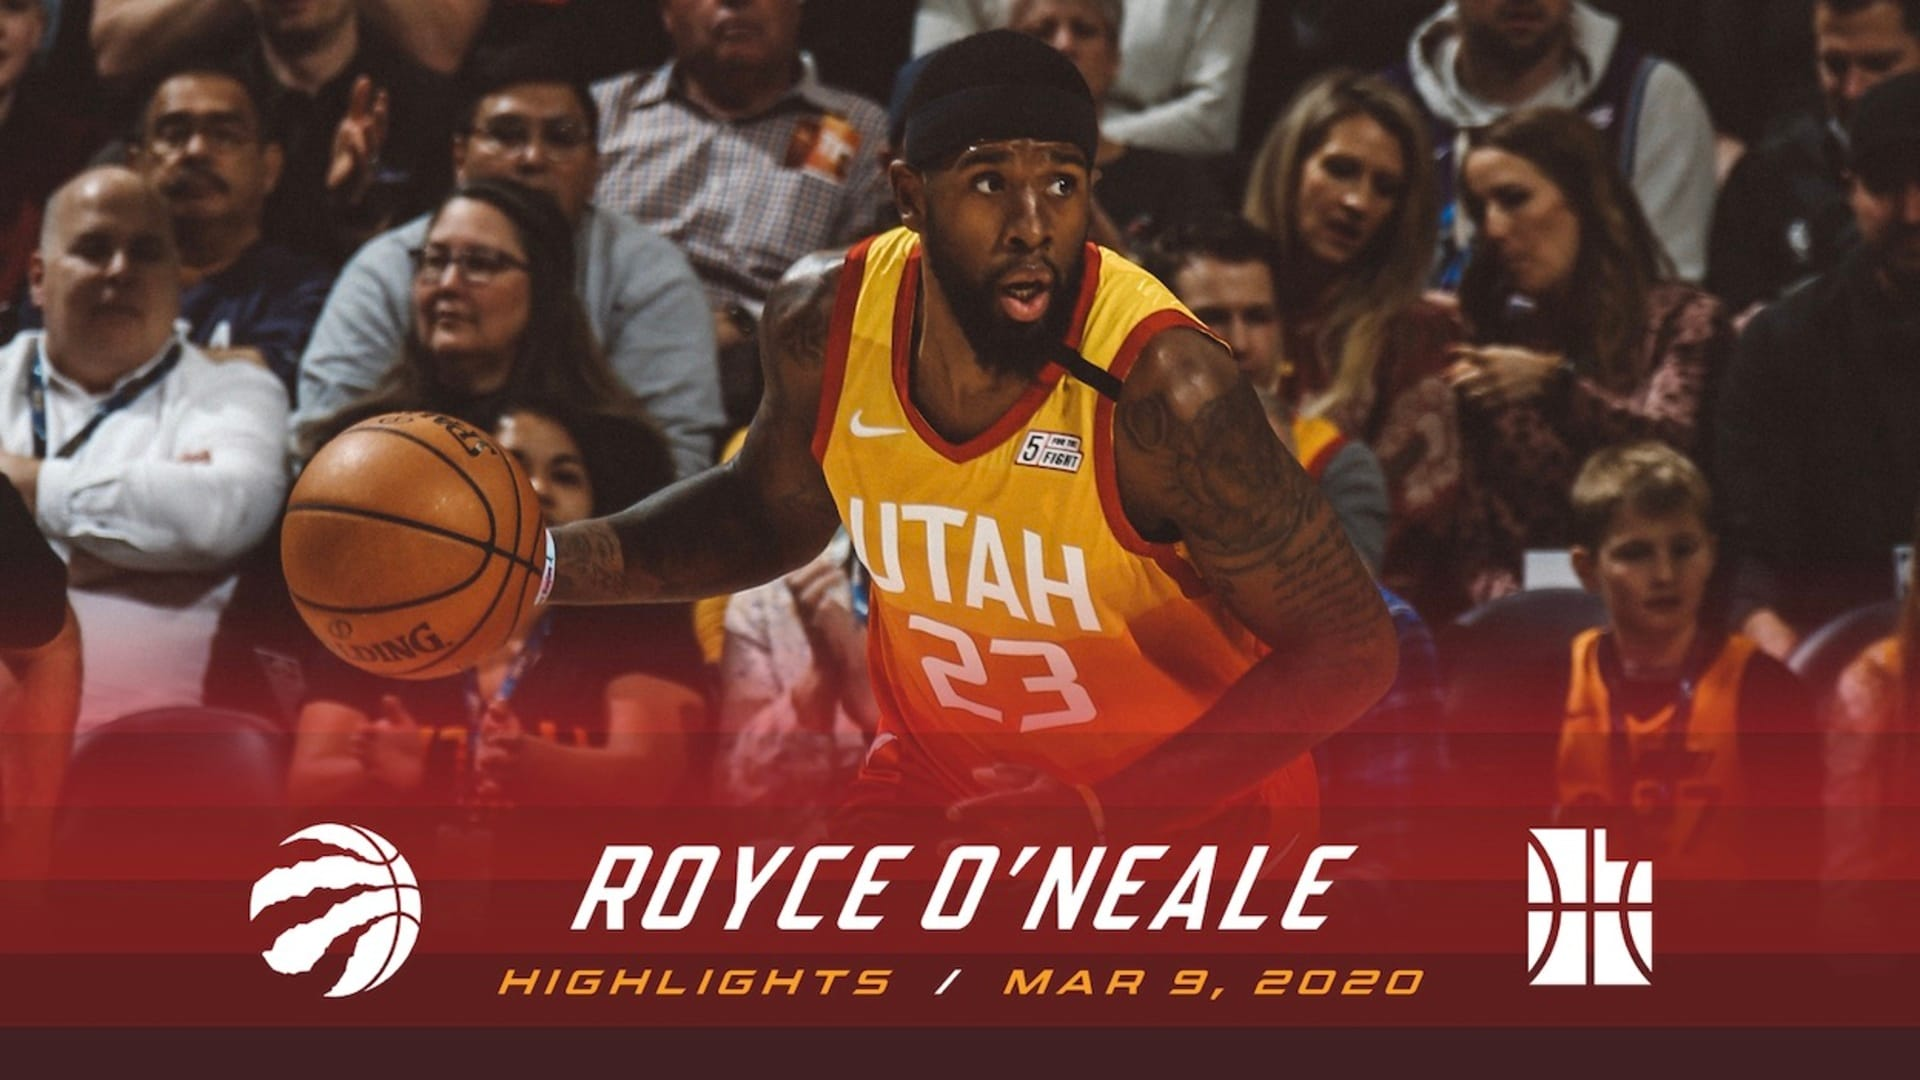 Highlights: Royce O'Neale — 15 points, 7 rebounds